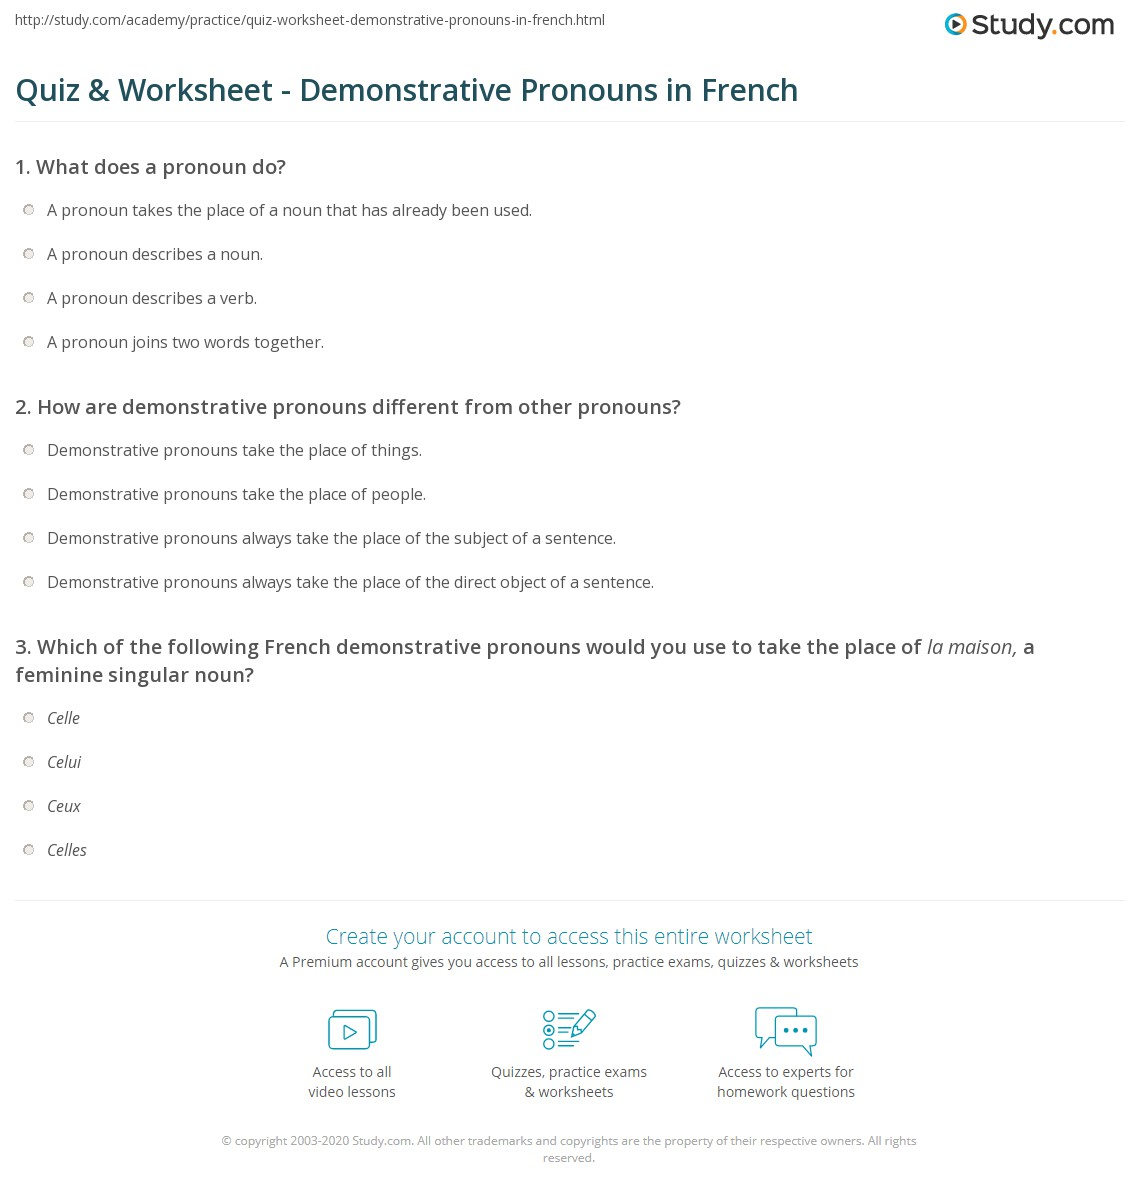 Quiz & Worksheet - Demonstrative Pronouns in French  Study.com education, multiplication, alphabet worksheets, and grade worksheets Noun And Pronoun Worksheets For Middle School 1446 x 1140